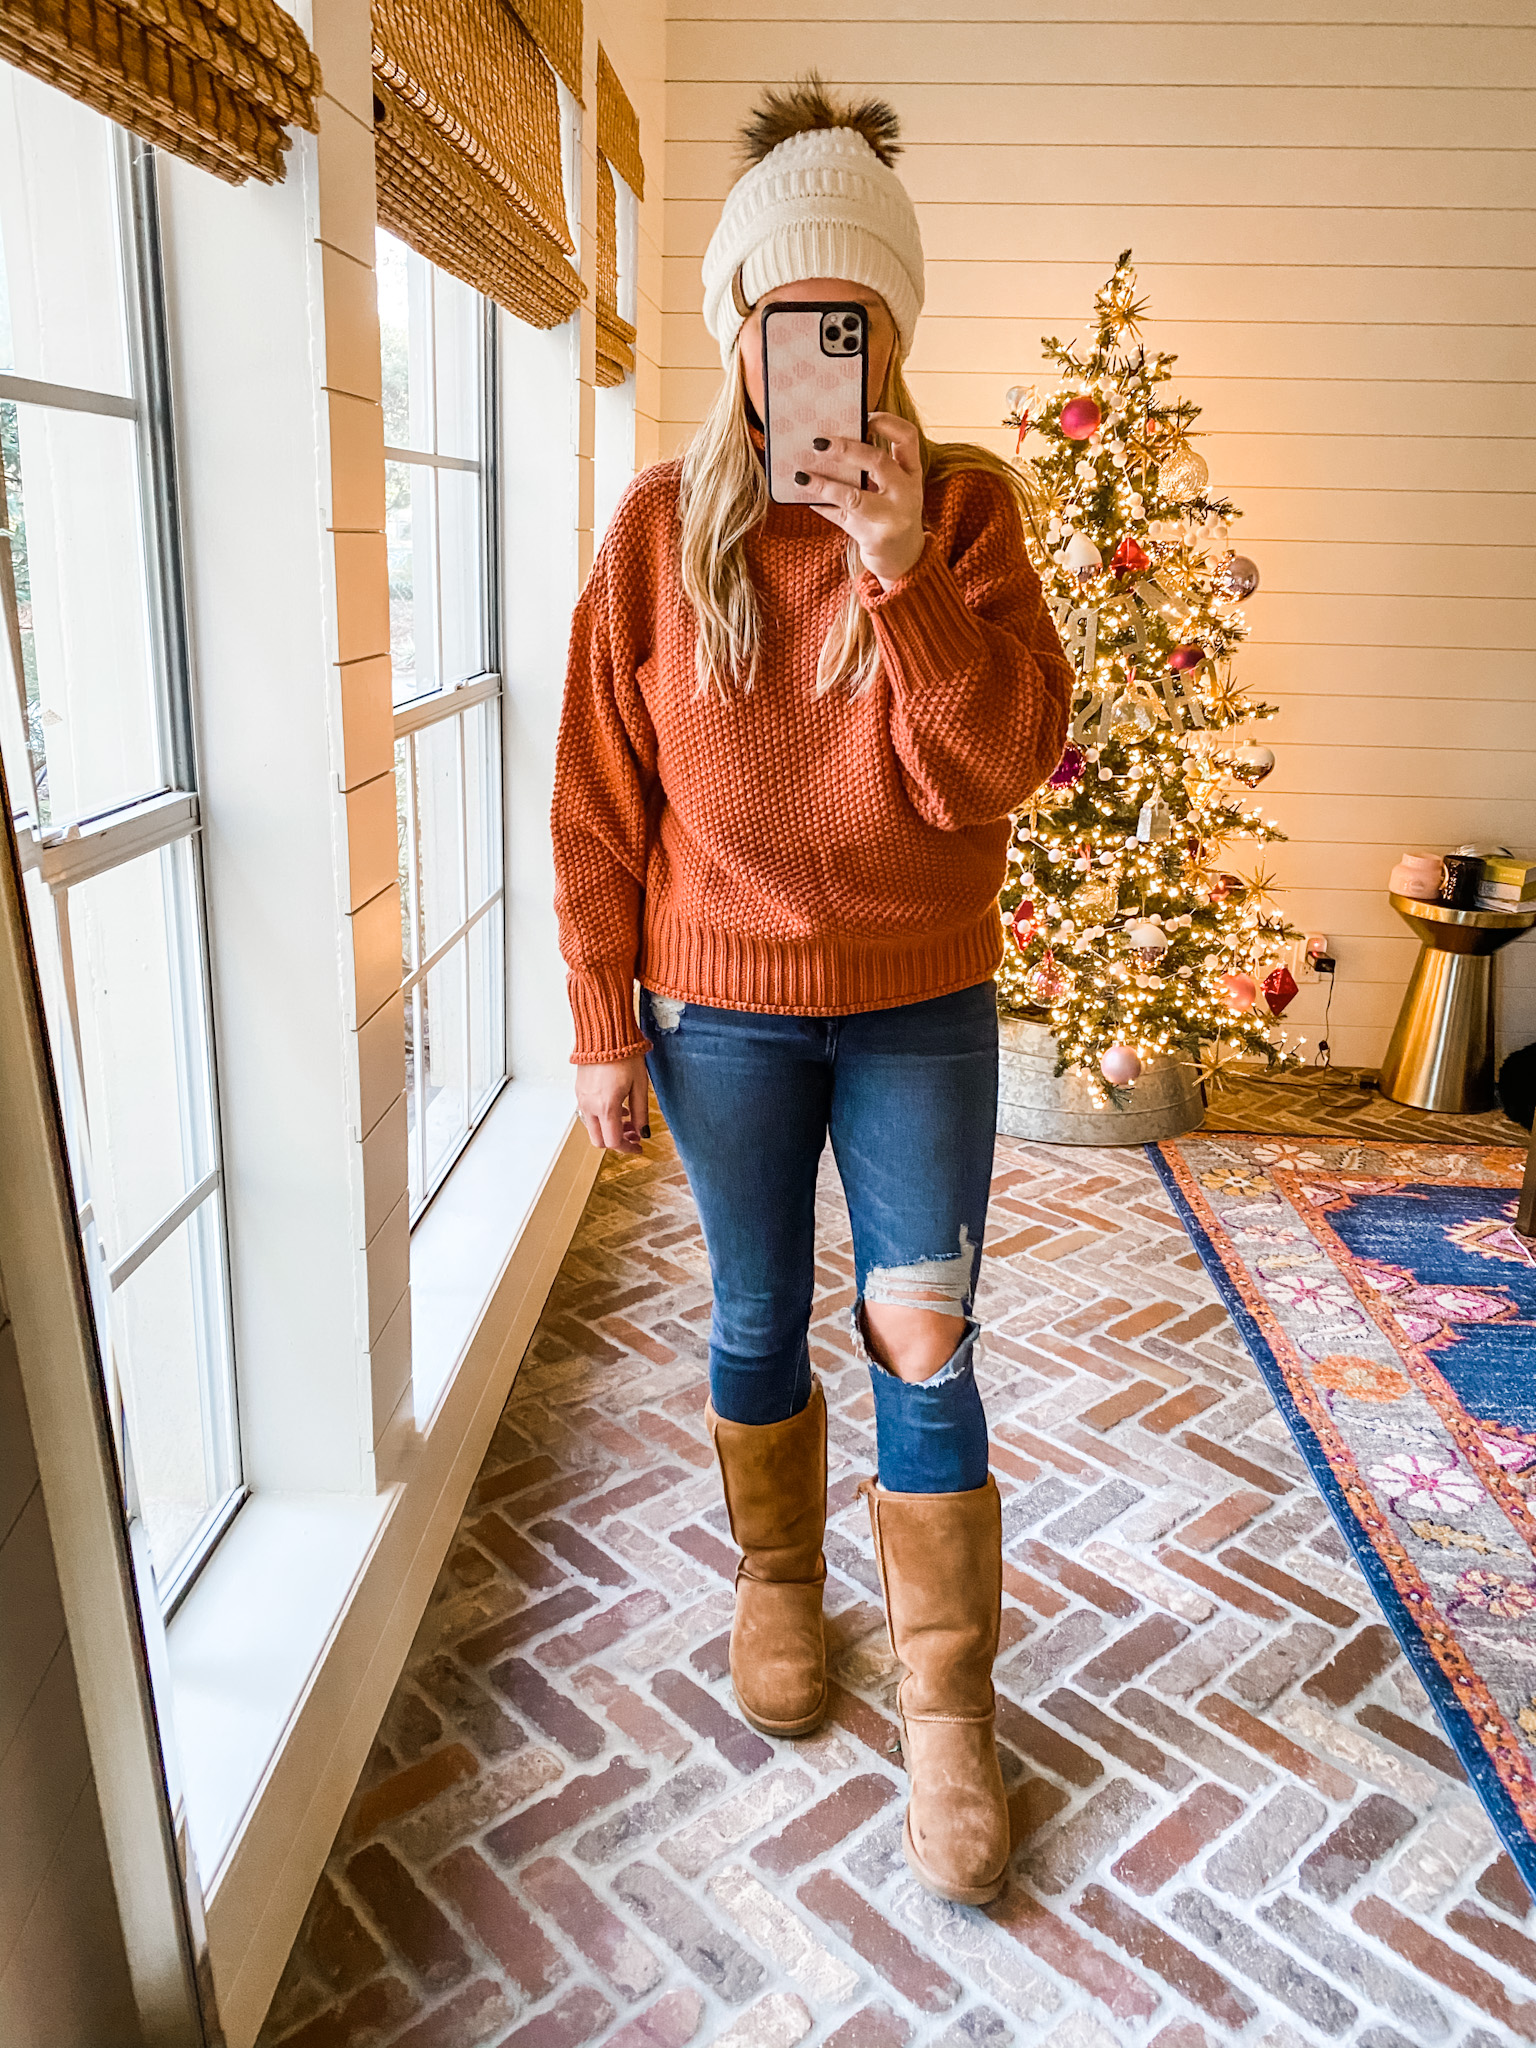 December Outfits by popular Houston fashion blog, Fancy Ashley: image of a woman standing in front of a Christmas tree decorated with pink, white and silver ornaments and wearing a orange cable knit sweater, distressed denim, cream fur pom beanie, and brown suede Ugg boots.